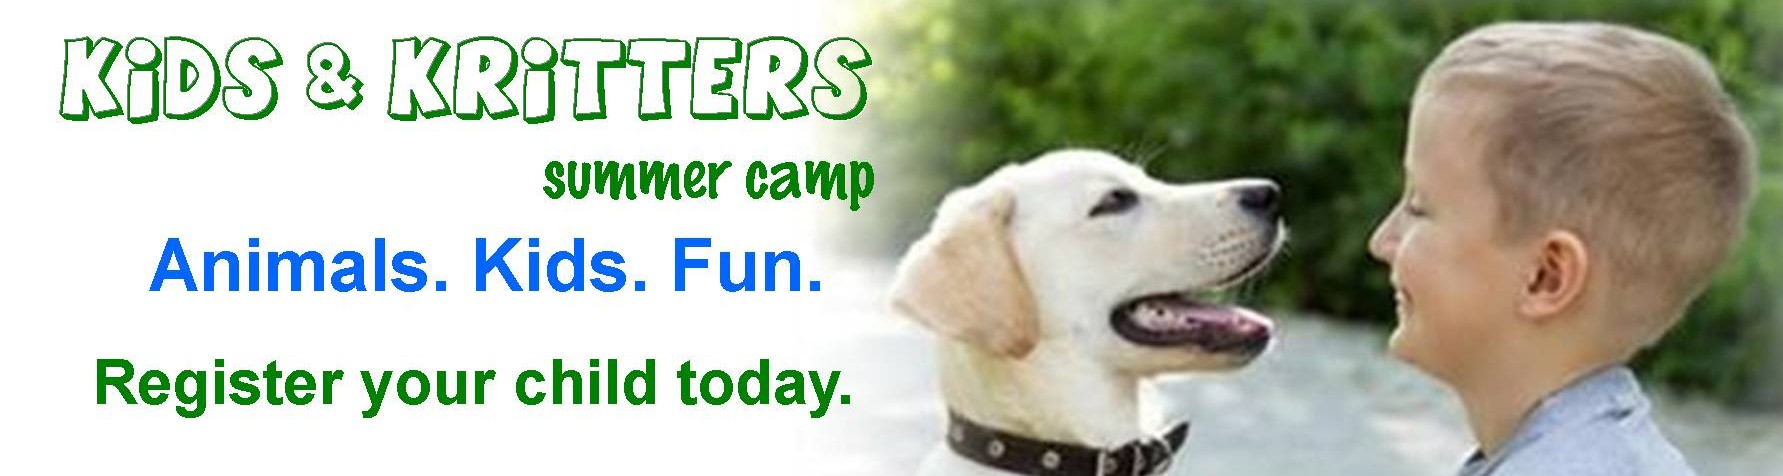 Kids & Kritters Summer Camp 2019 - Banner